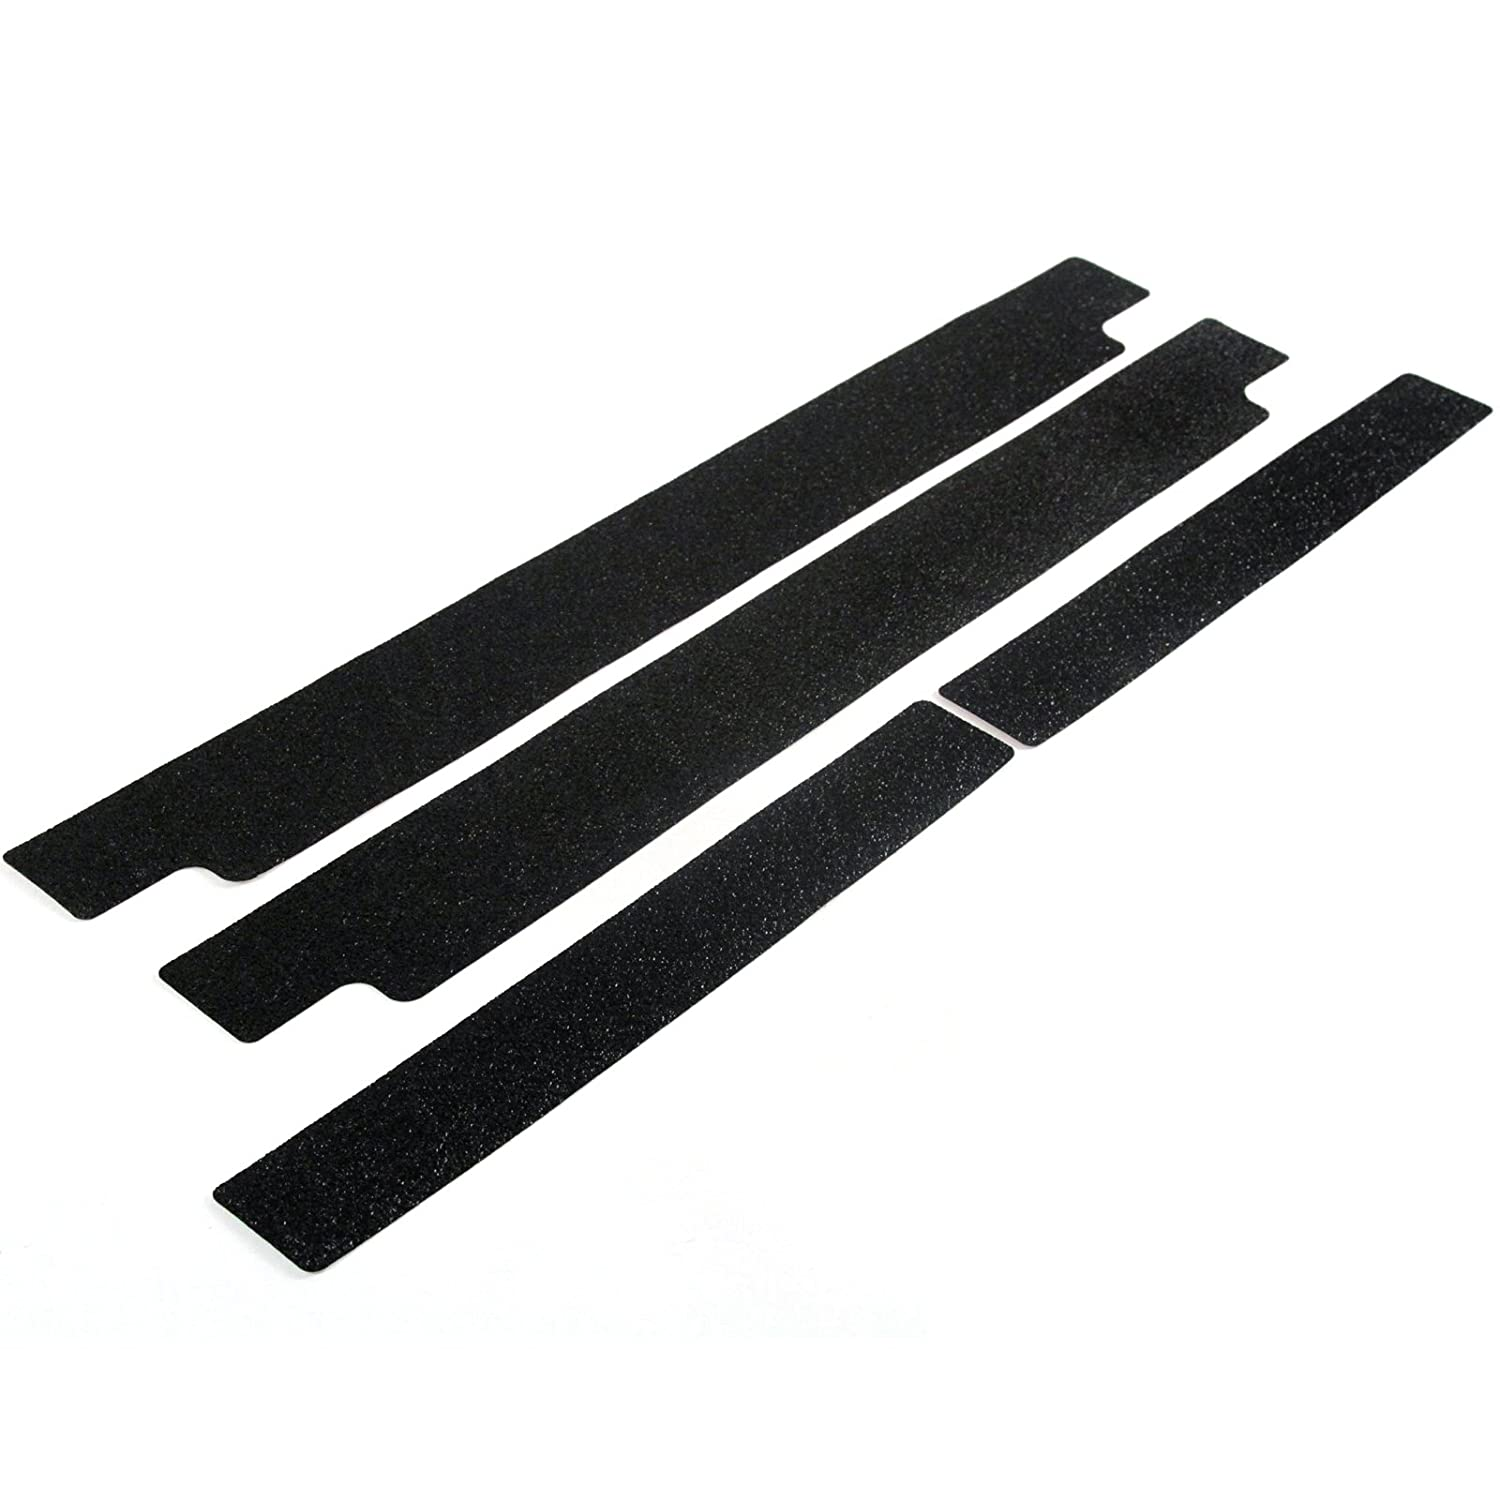 Custom Fit 2014-2016 Compatible with Toyota Tundra Double Cab Door Sill Applique Scuff Plate Scratch Protectors 4pc Kit Paint Protection Threshold Shield